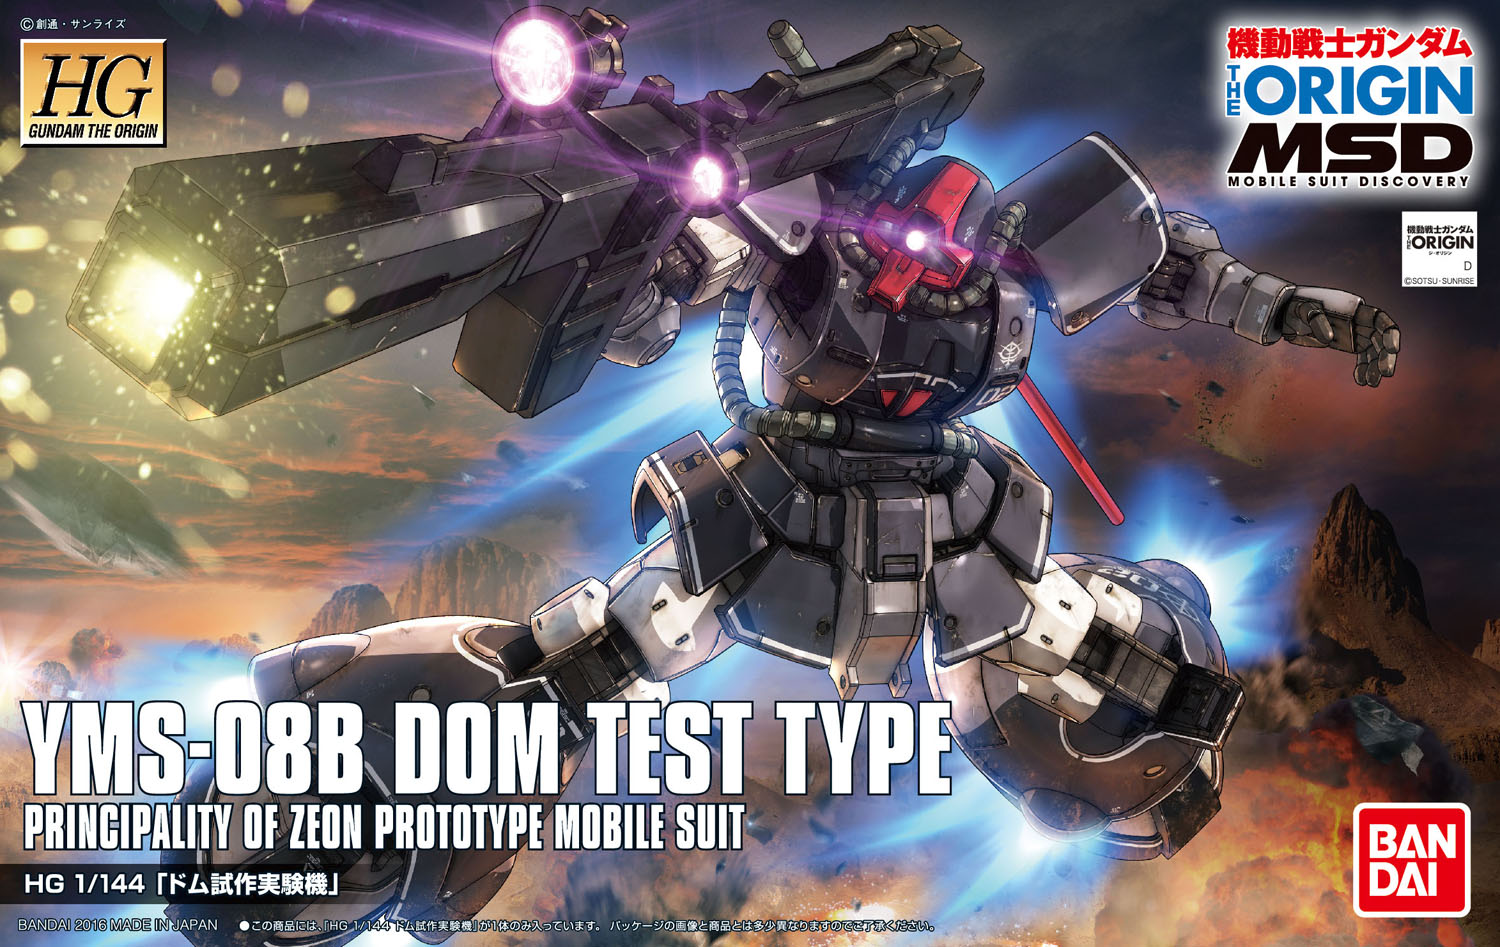 HG 1/144 YMS-08B ドム試作実験機 [Dom Test Type](THE ORIGIN)